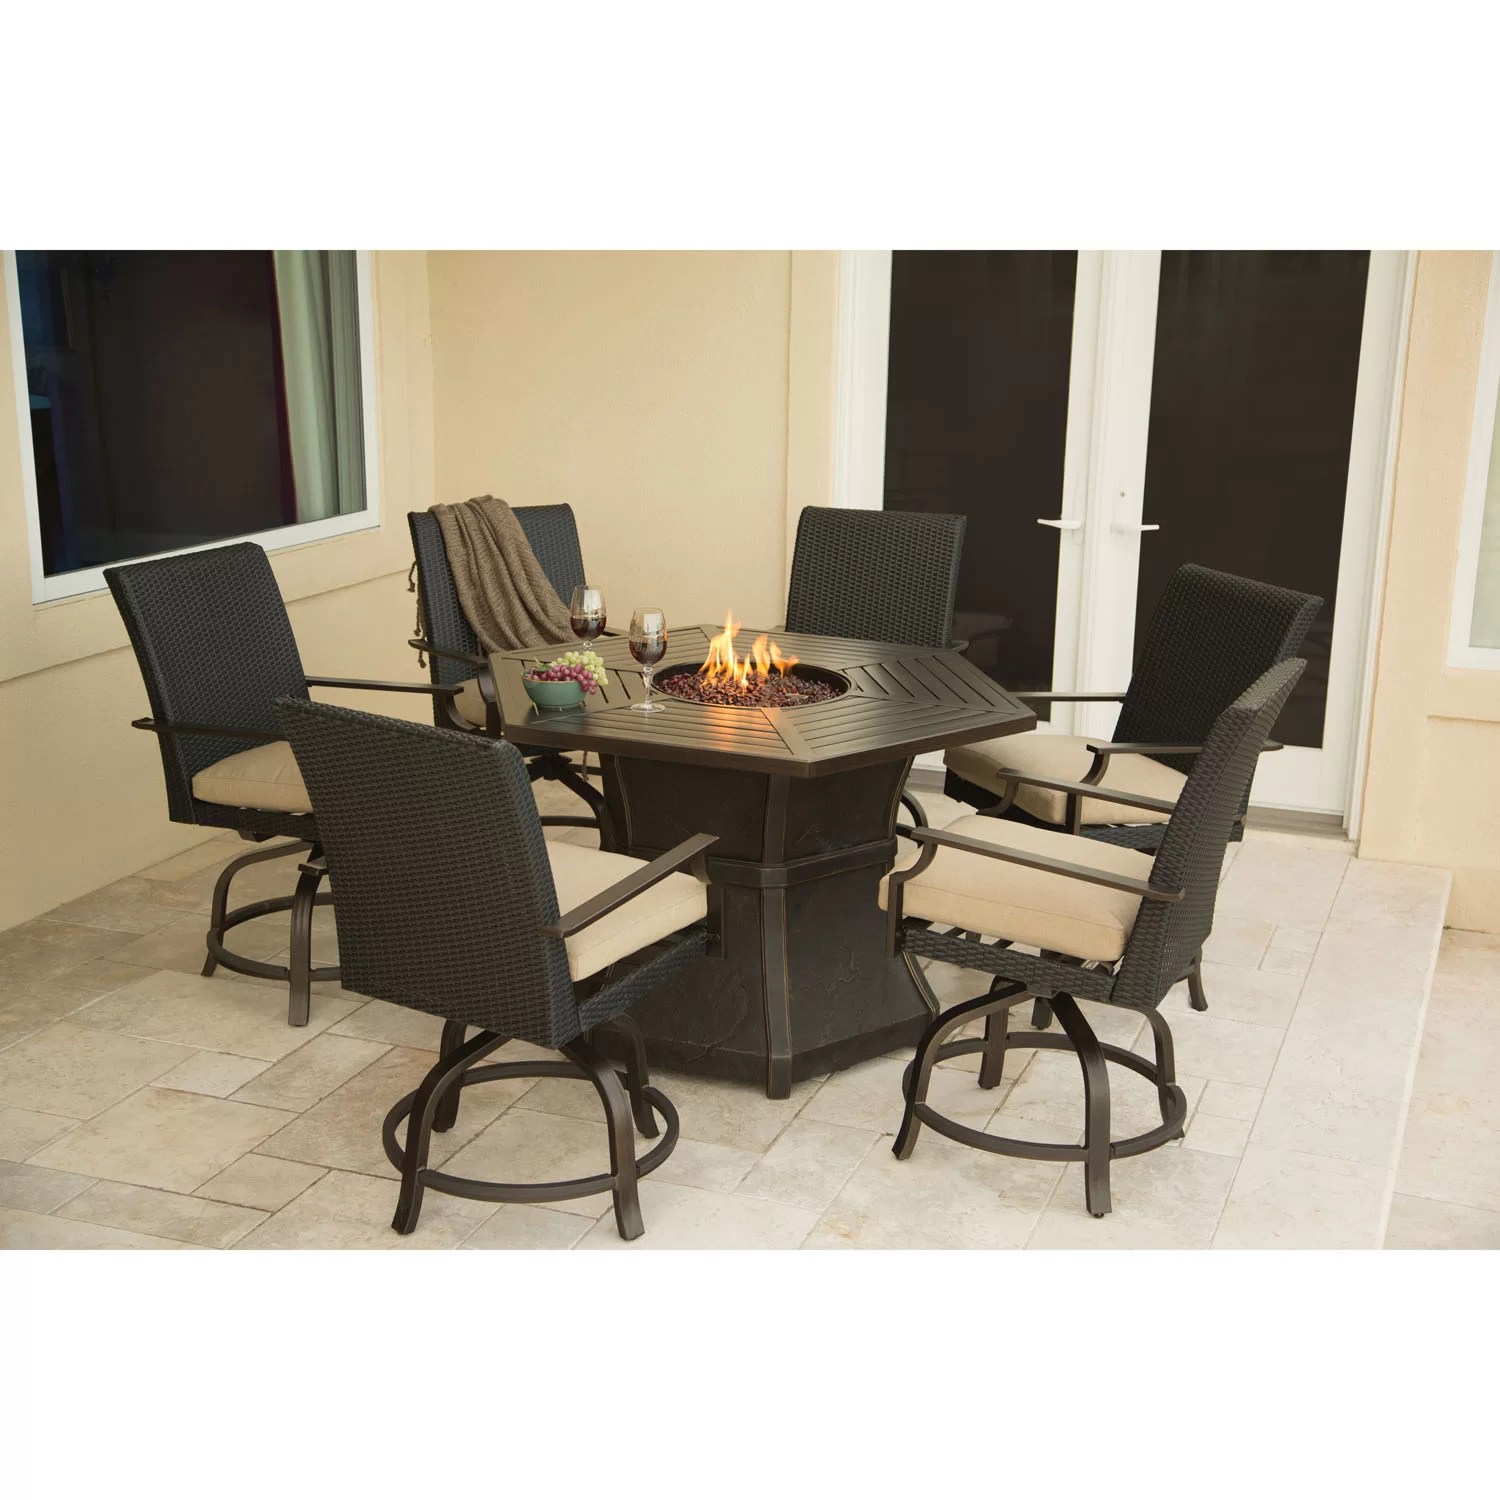 Hanover Aspen Creek 7 Piece Fire Pit Dining Set with